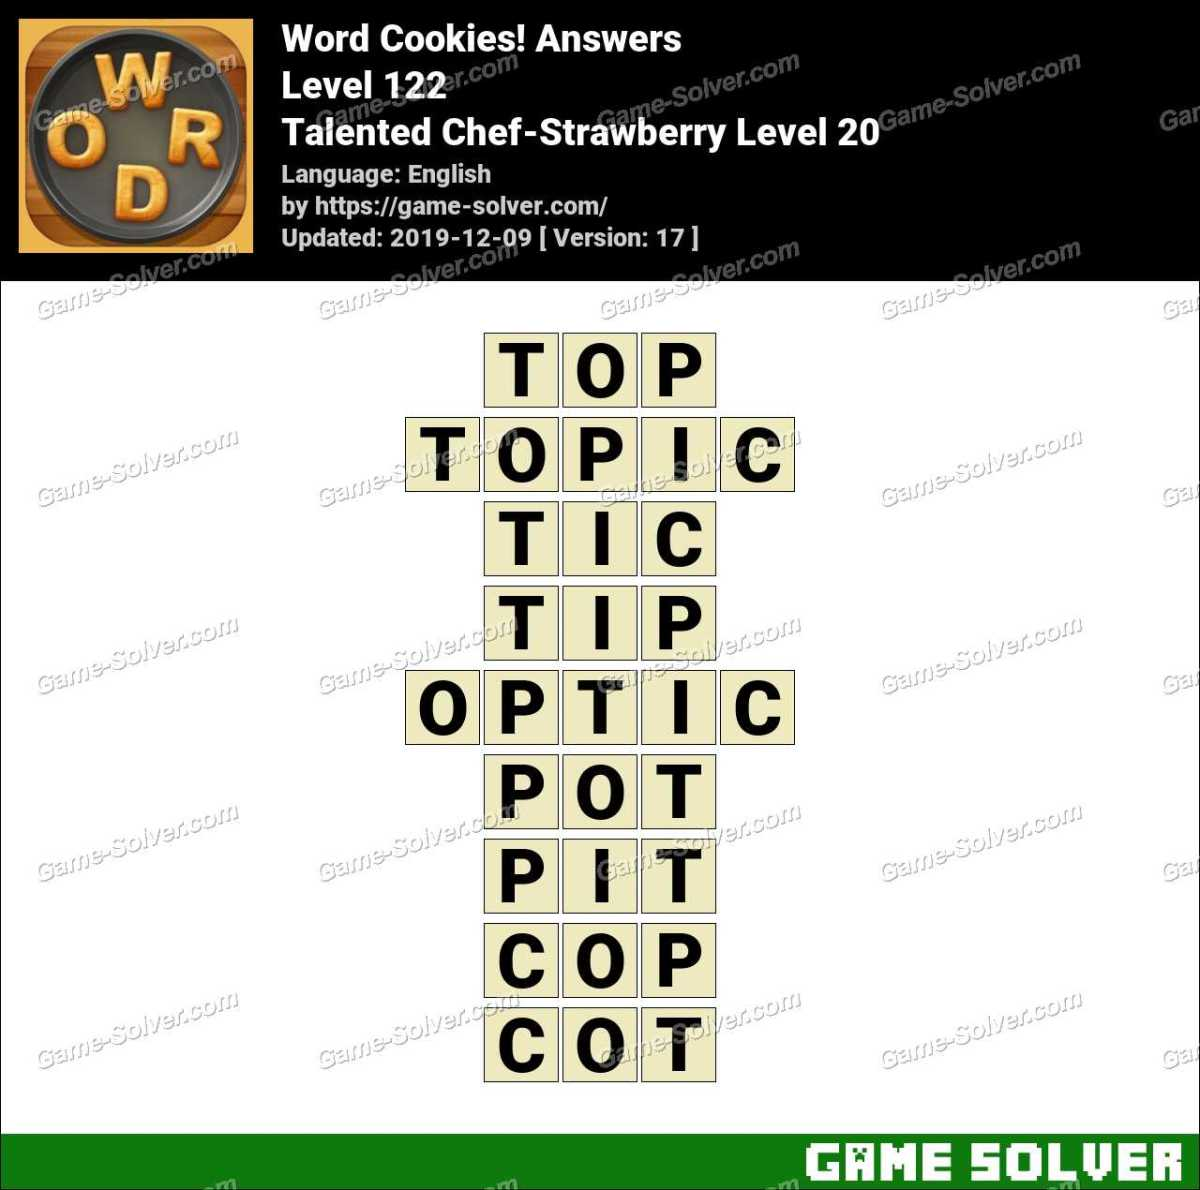 Word Cookies Talented Chef-Strawberry Level 20 Answers